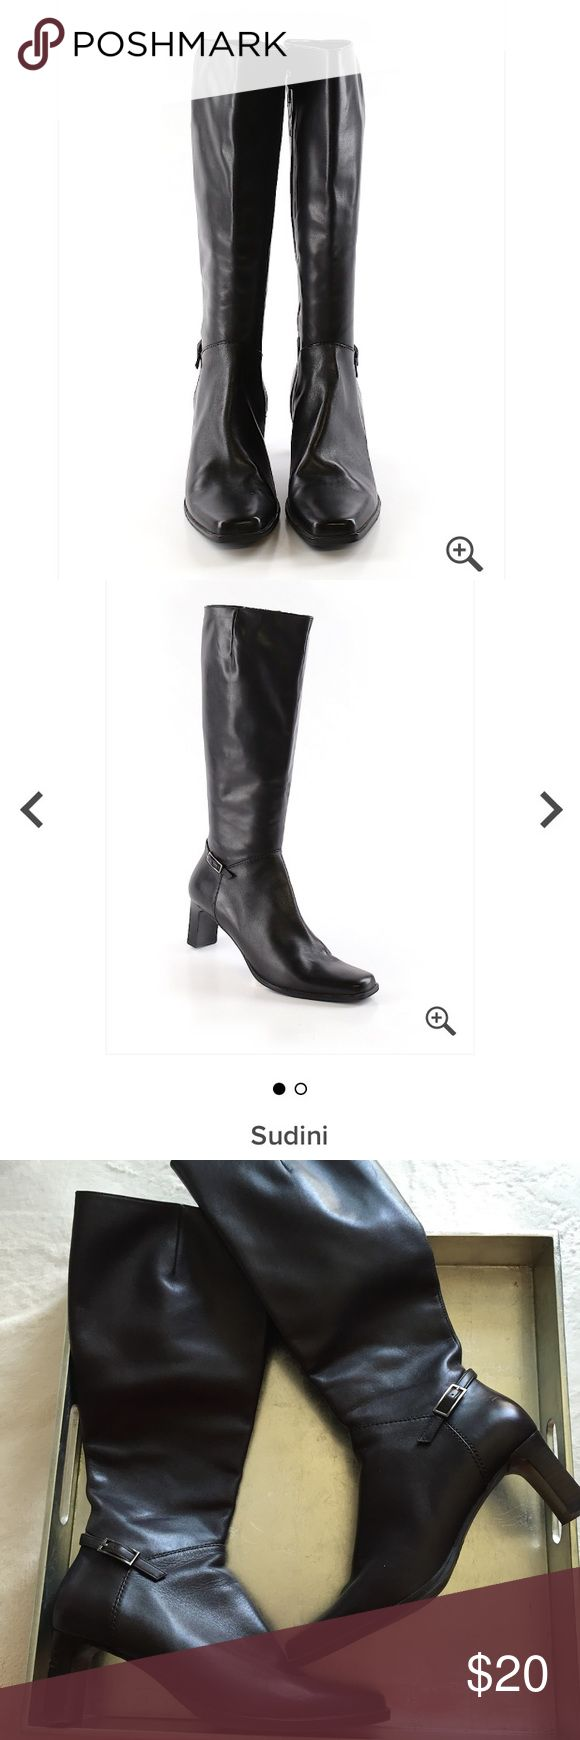 Sudini chocolate brown leather boots Gorgeous rich chocolate brown leather, with zip on inside and 4 slit stretch panel for comfort these boots are like new worn once Sudini Shoes Heeled Boots